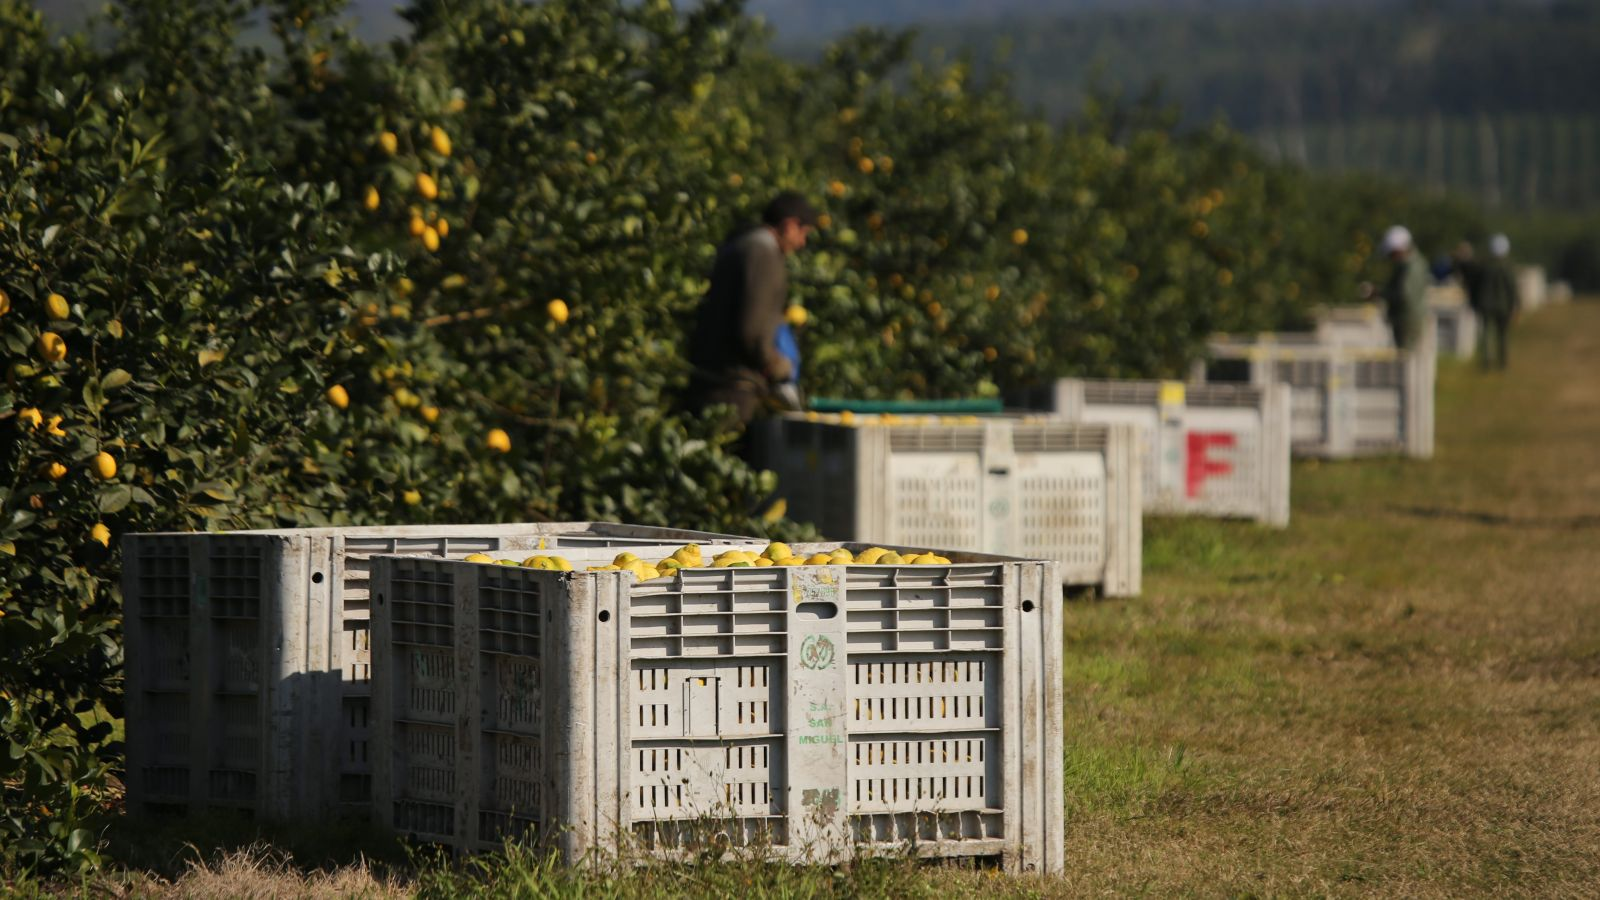 San Miguel lemon farm crates